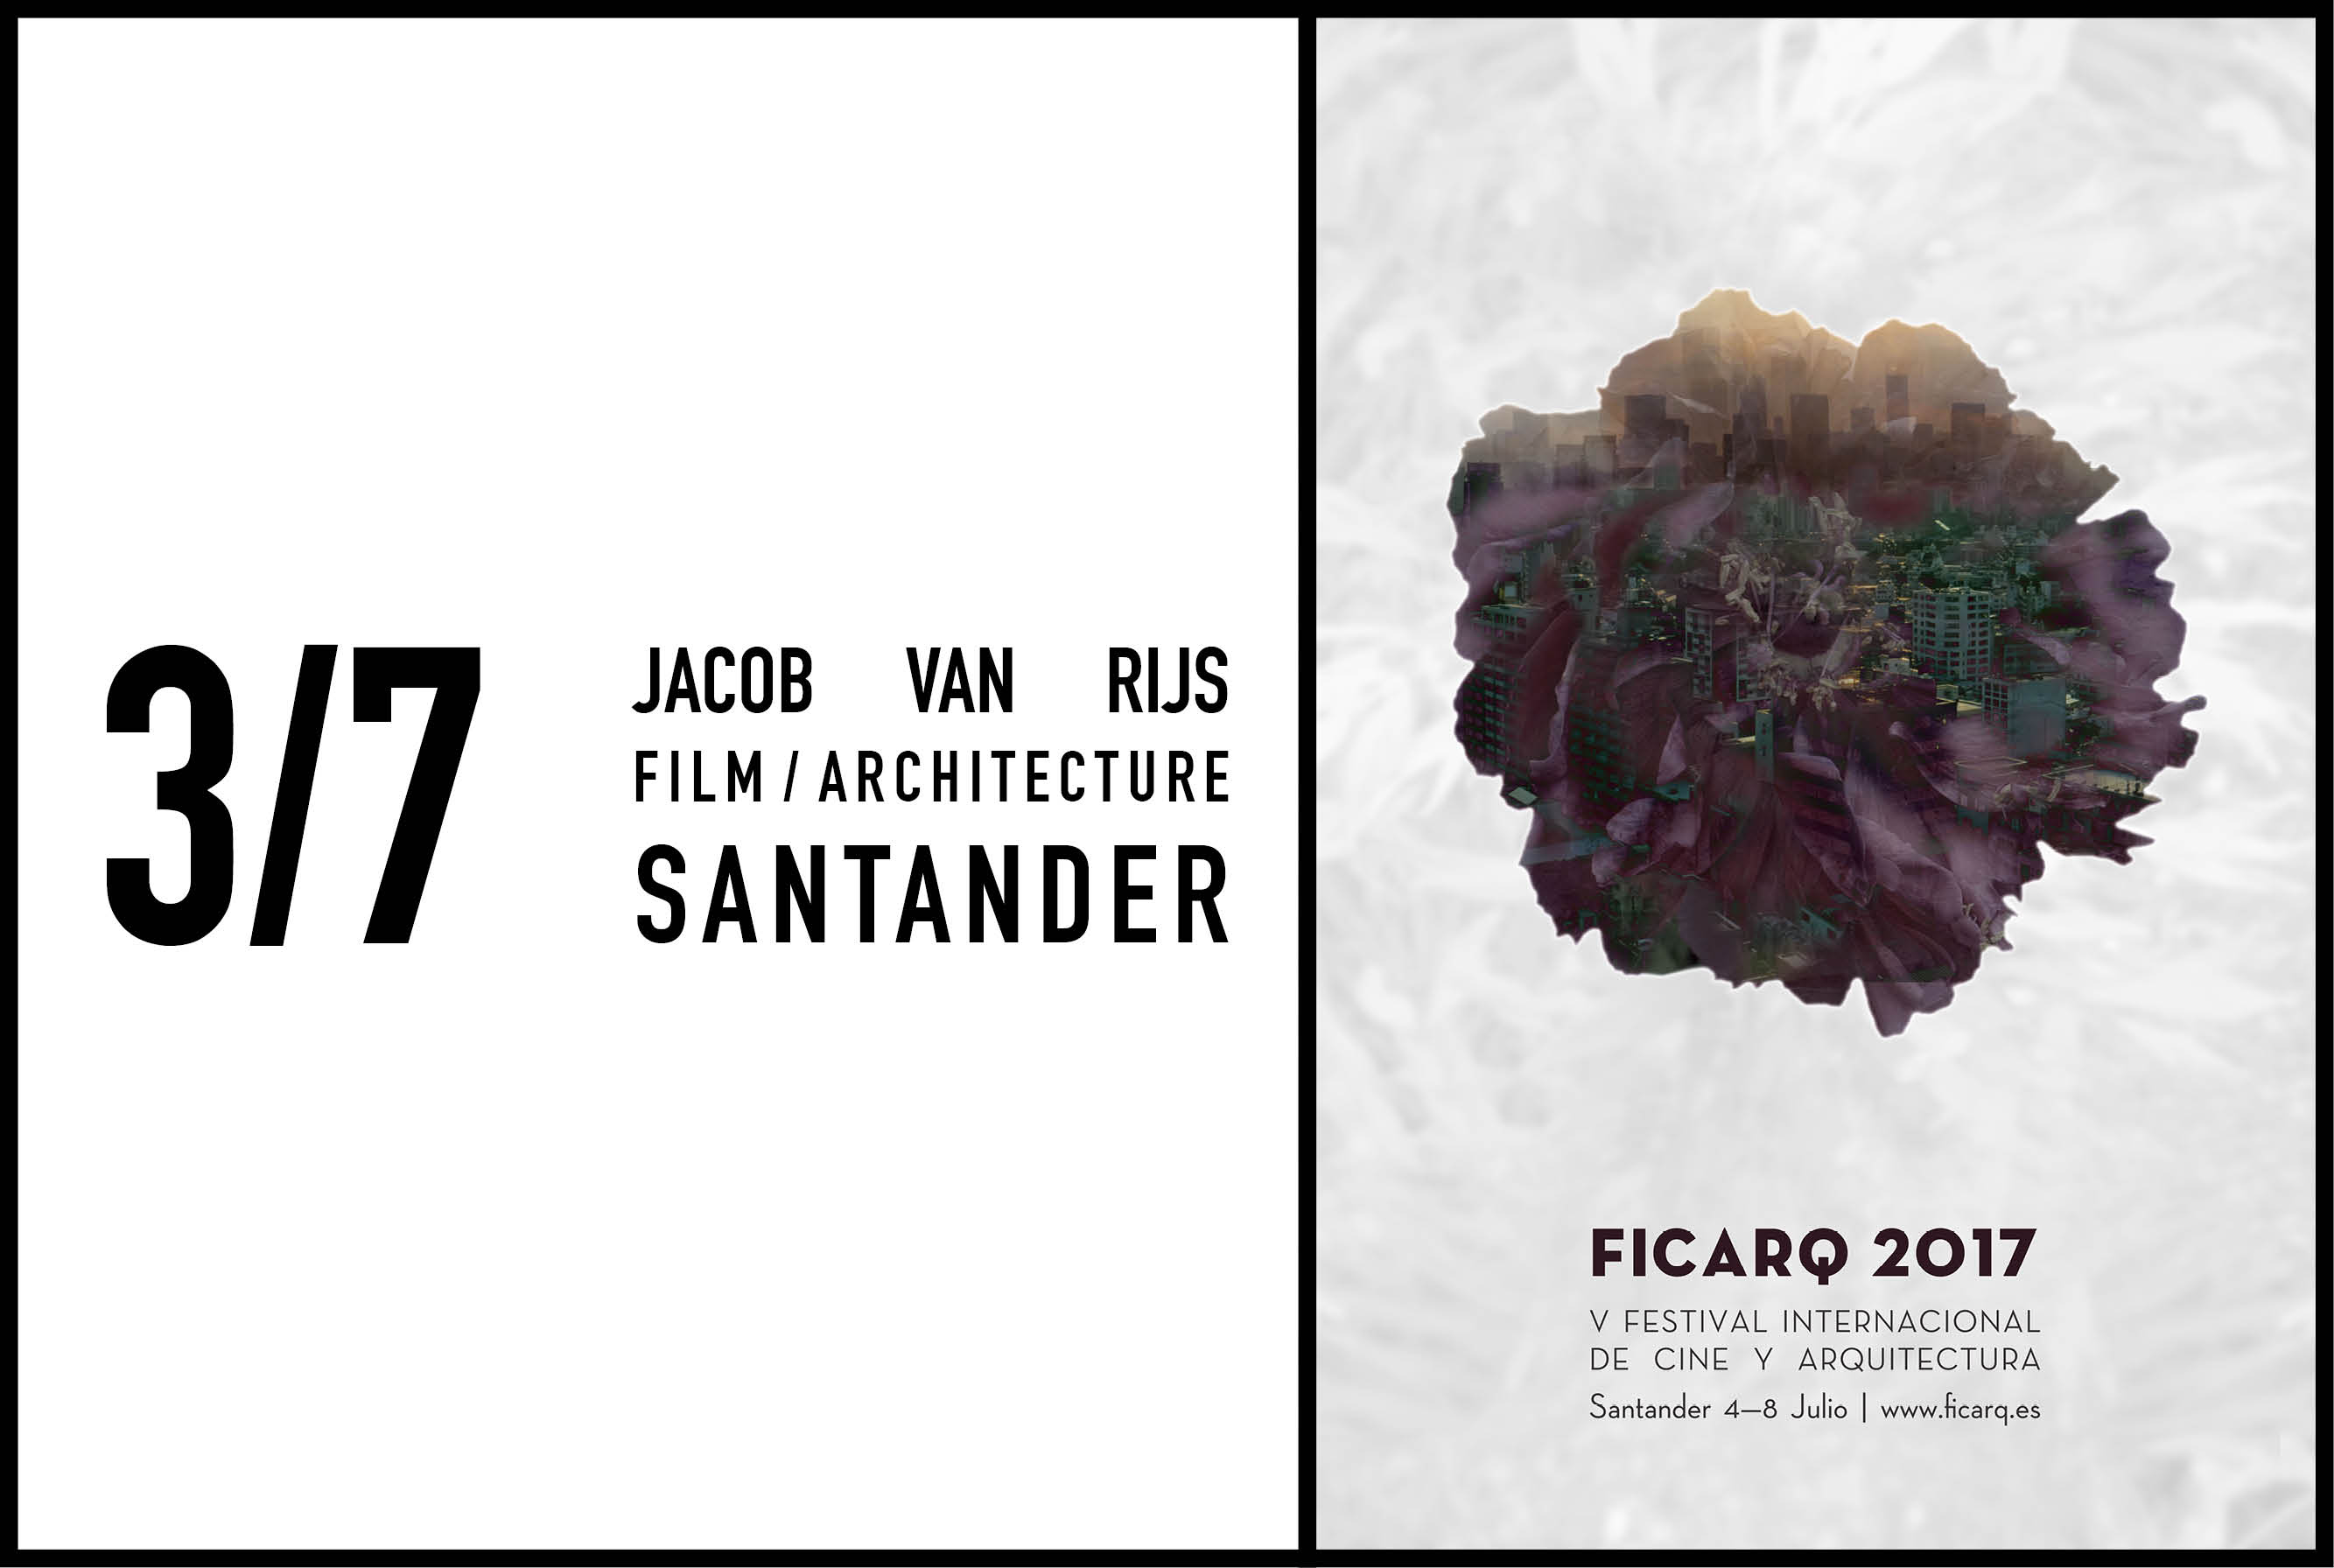 Jacob van Rijs to give opening lecture at FICARQ, 3 July 2017